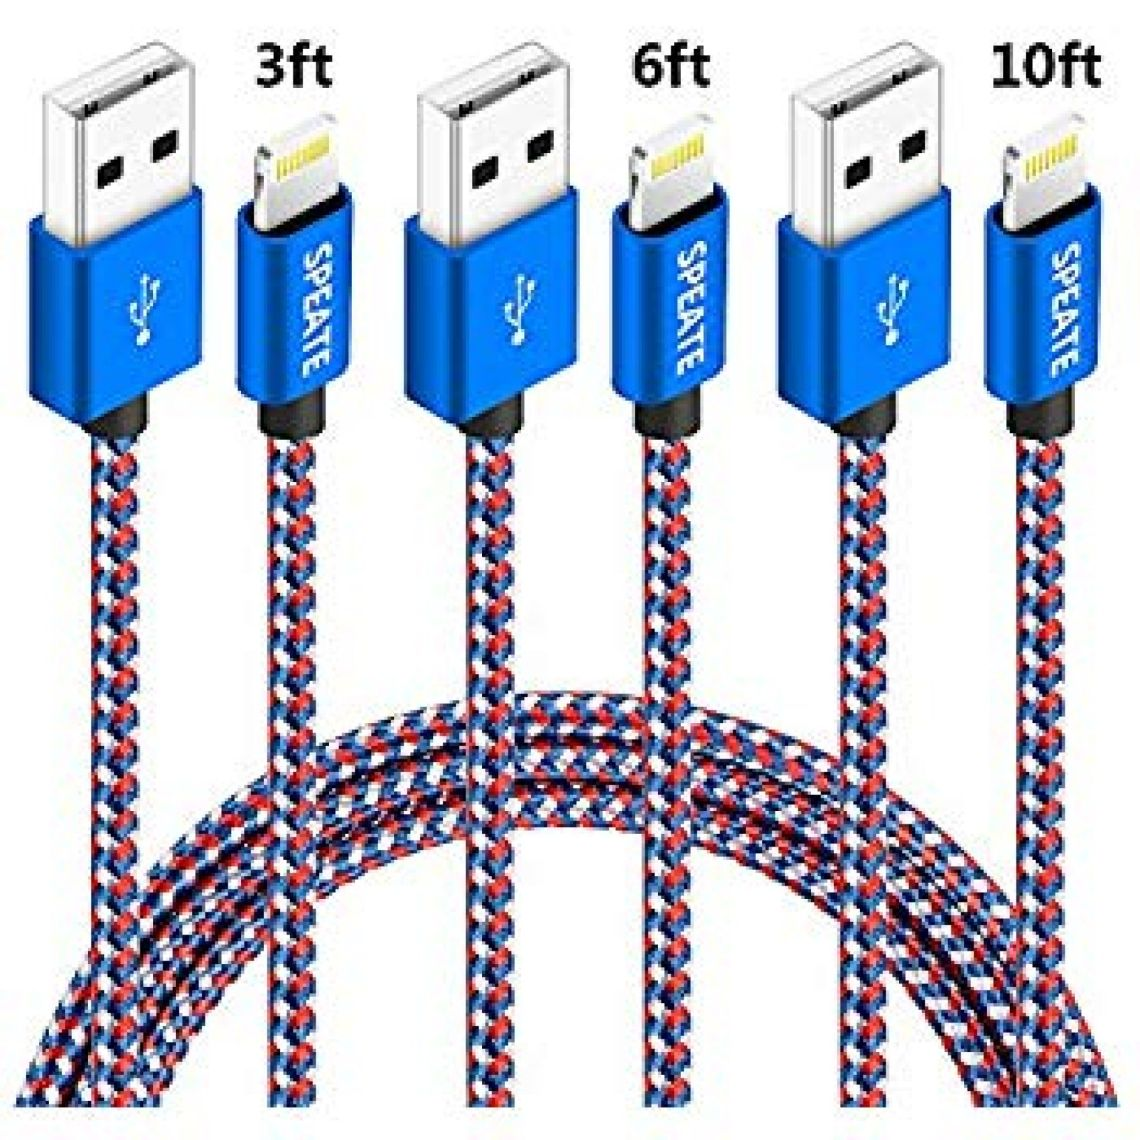 Amazon.com: iPhone Charger, Lightning Charger Cables 3FT 6FT 10FT iPhone Charger Cable Syncing USB Cord Compatible for iPhone X/8/8Plus/7/7Plus/6/6Plus/6s/6sPlus/5/5s/5c/SE/iPad/iPod (Blue+White+Red): Cell Phones & Accessories